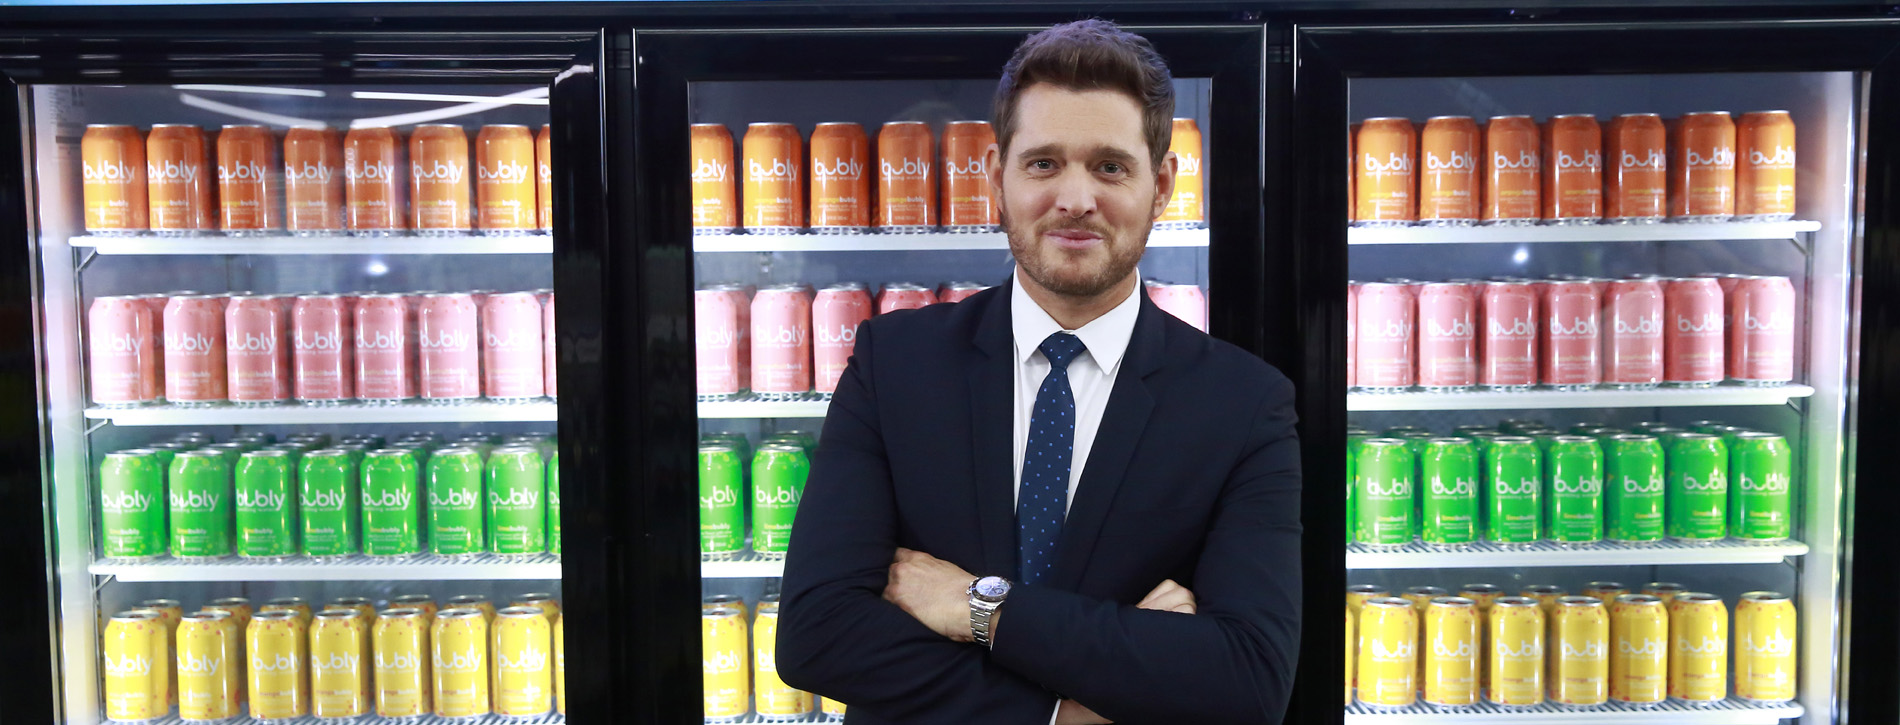 Michael Bublé standing in front of coolers with Bubly water.